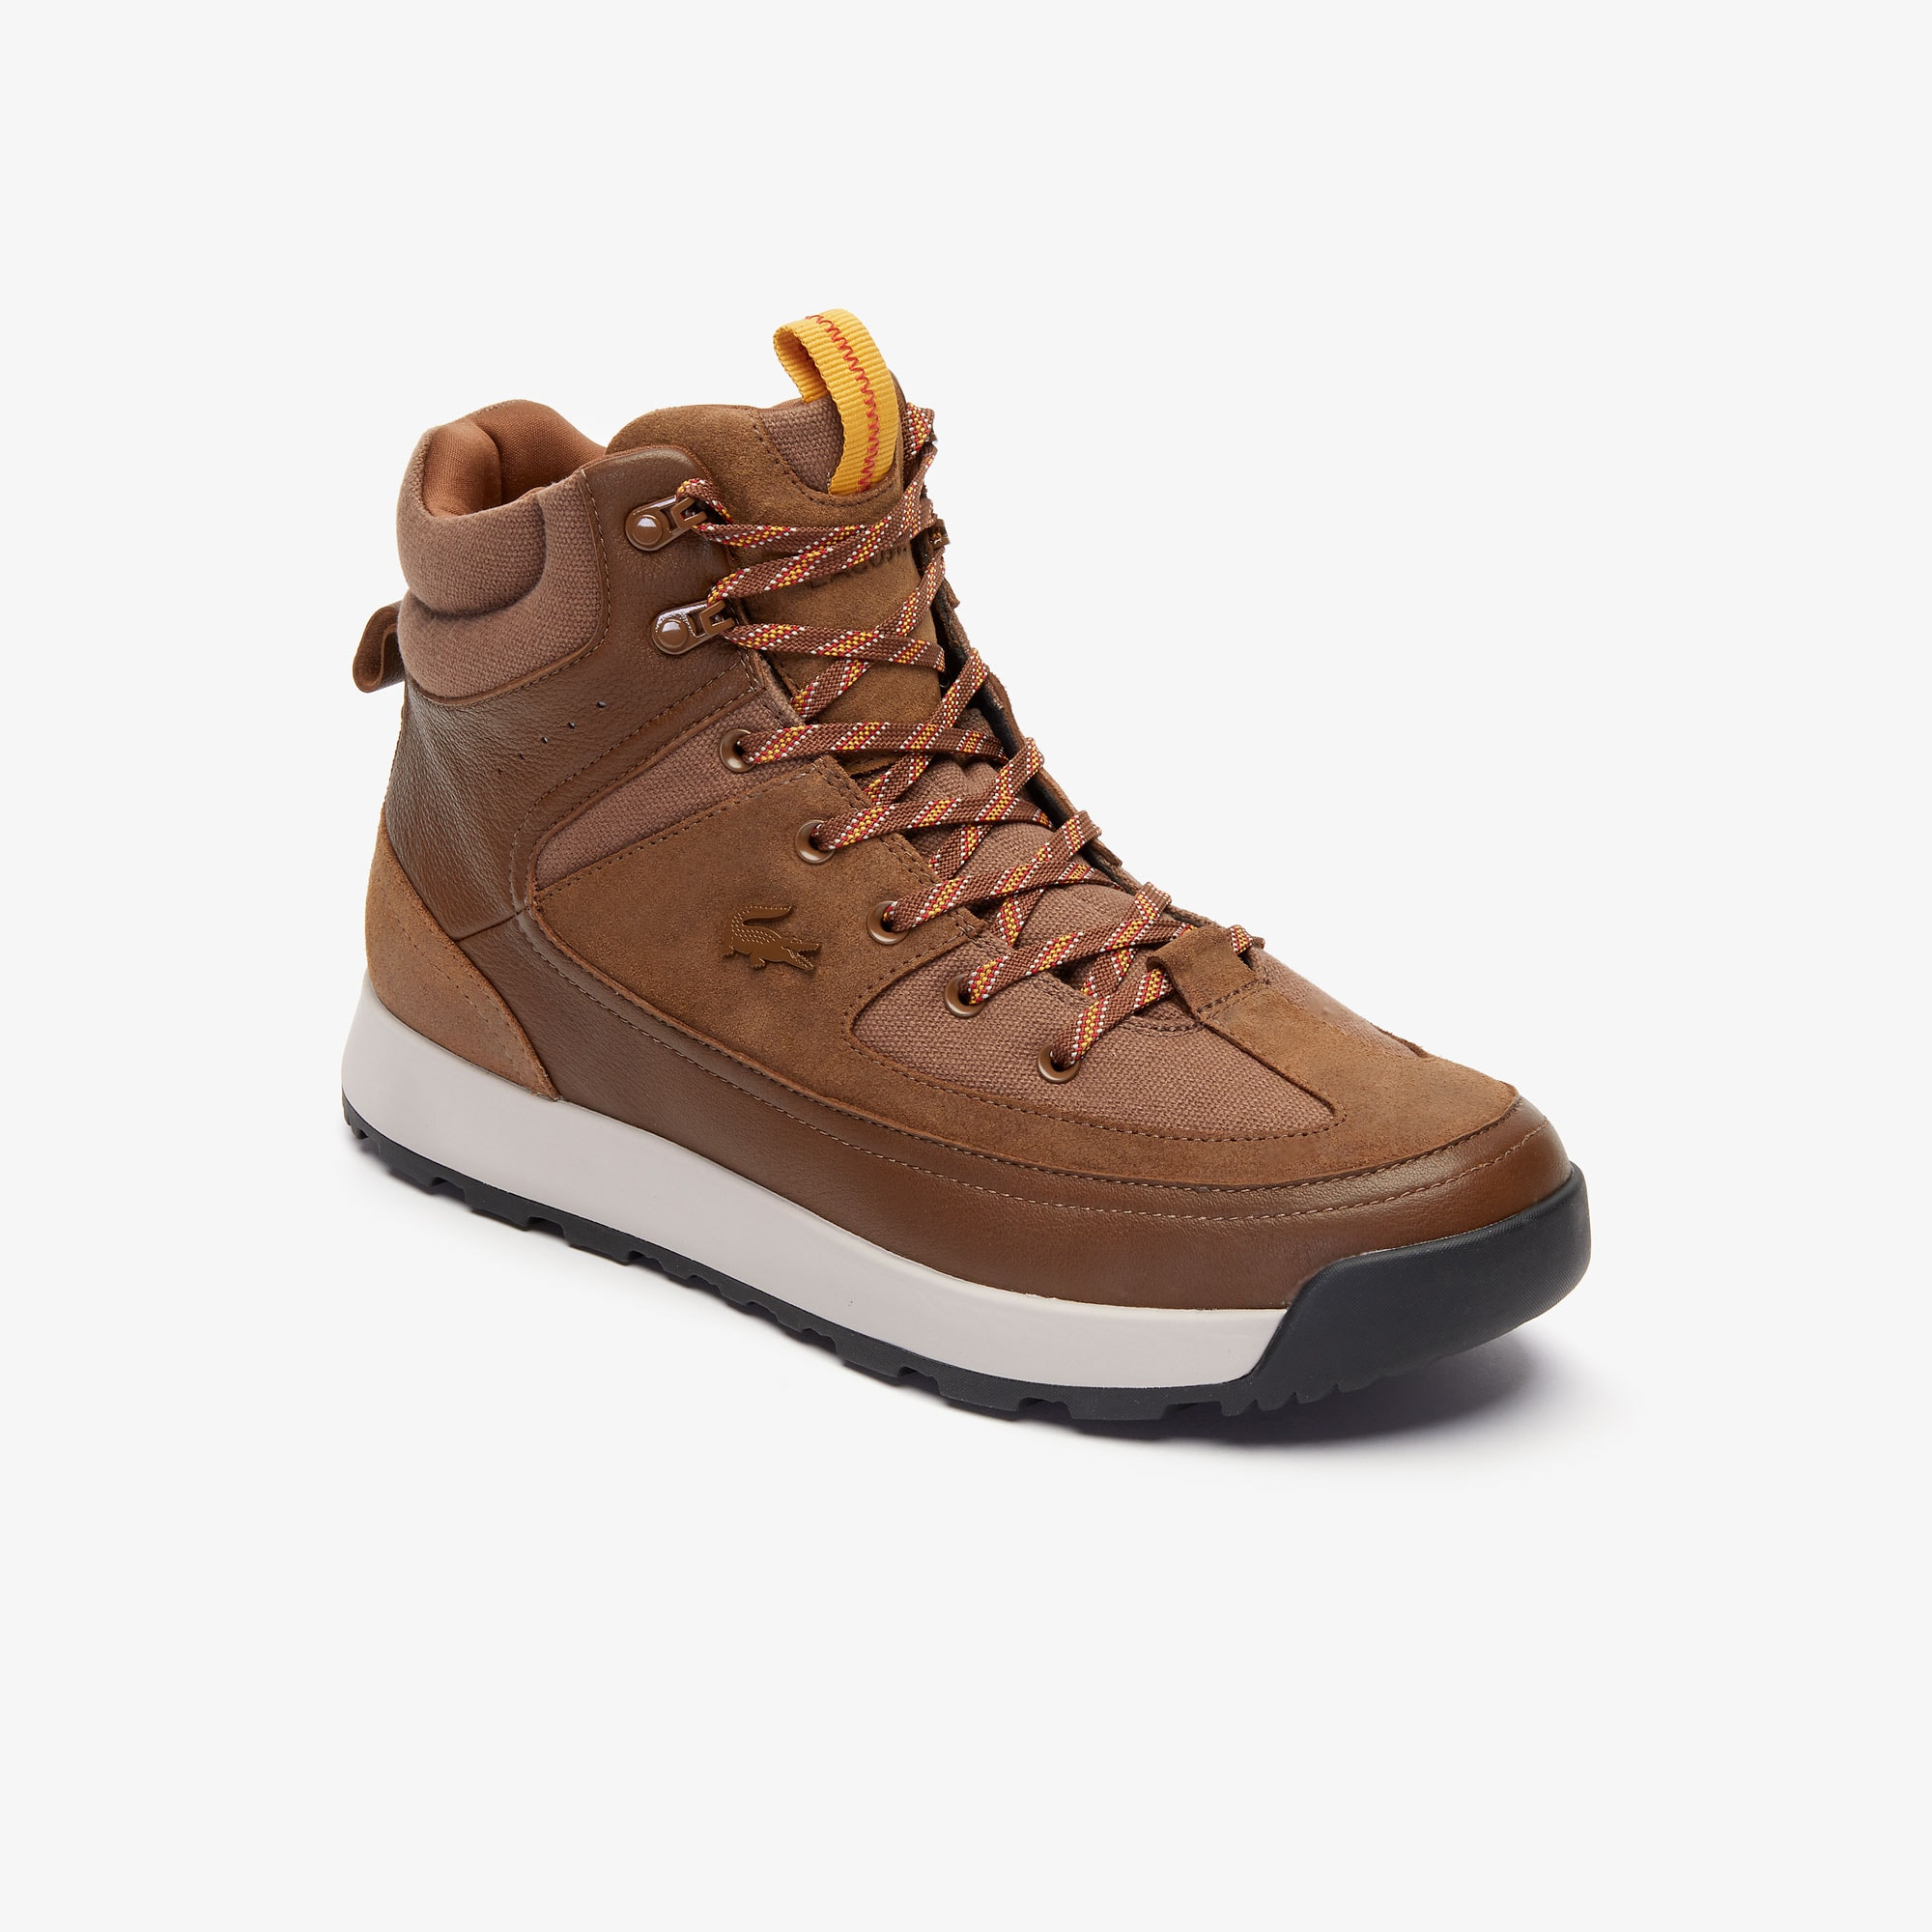 lacoste waterproof boots authentic